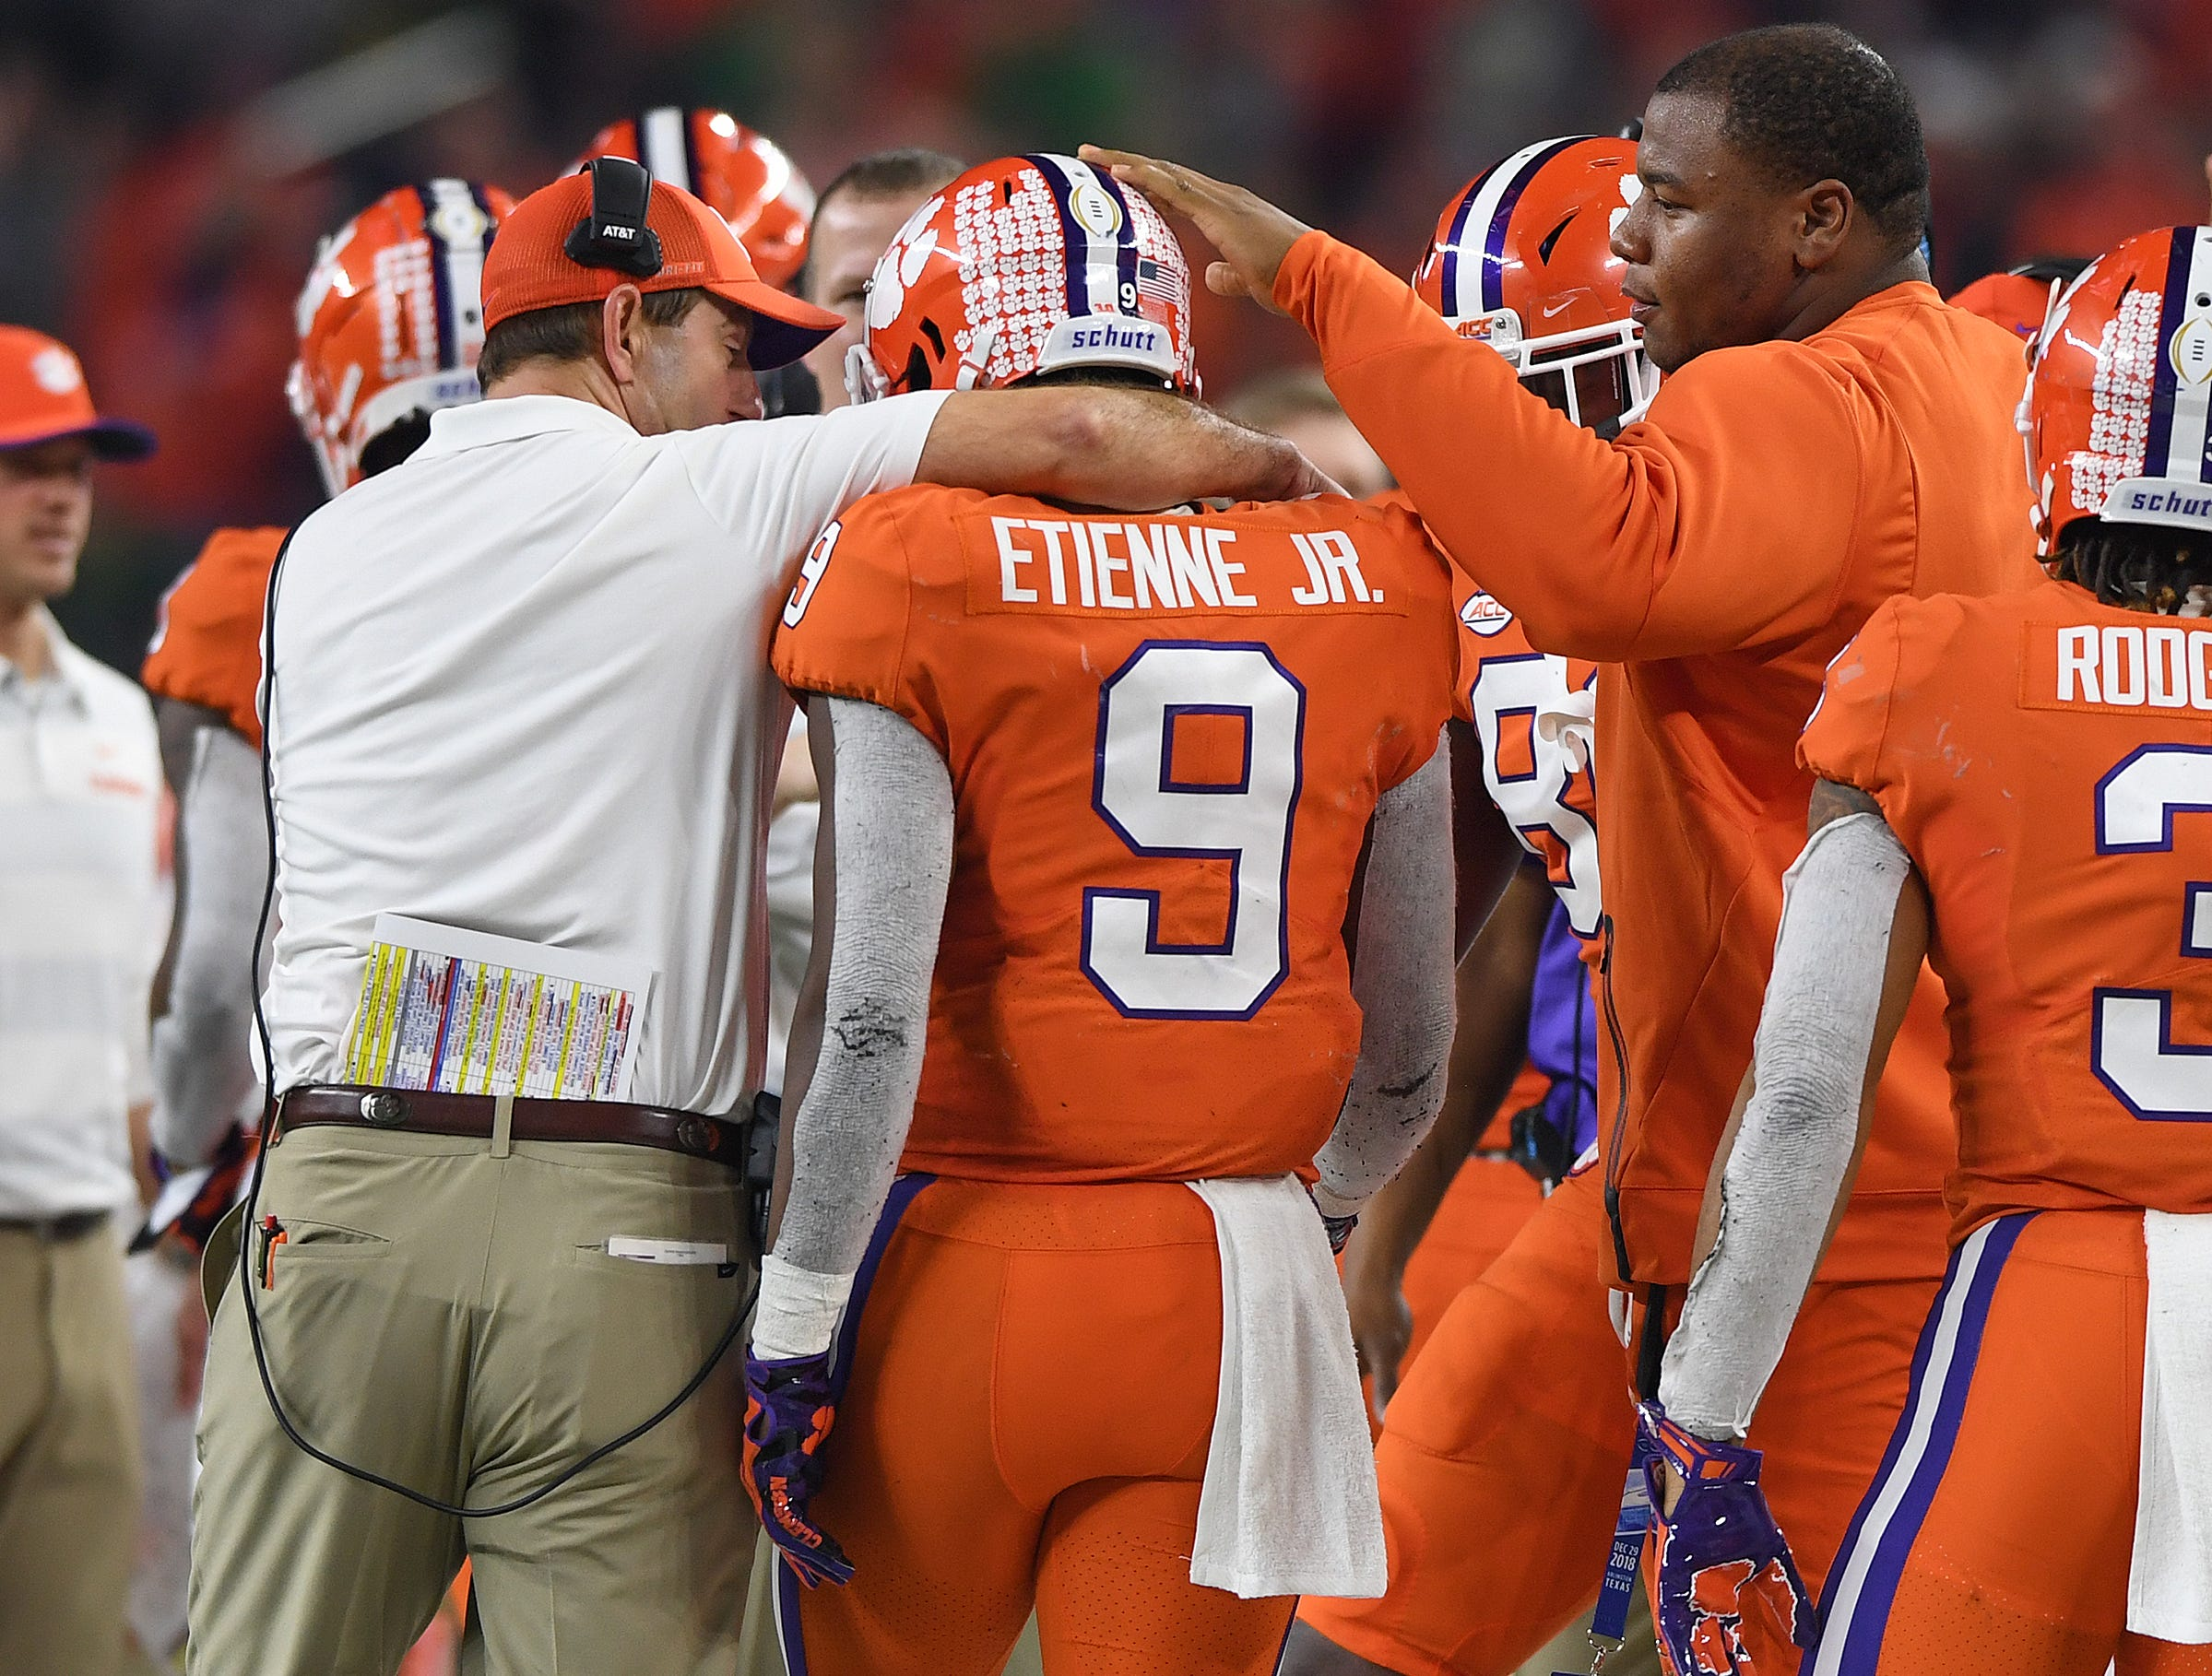 Clemson head coach Dabo Swinney congratulates running back Travis Etienne (9) after he scored on a 62 yard carry against Notre Dame during the 3rd quarter of the Goodyear Cotton Bowl at AT&T stadium in Arlington, TX Saturday, December 29, 2018.